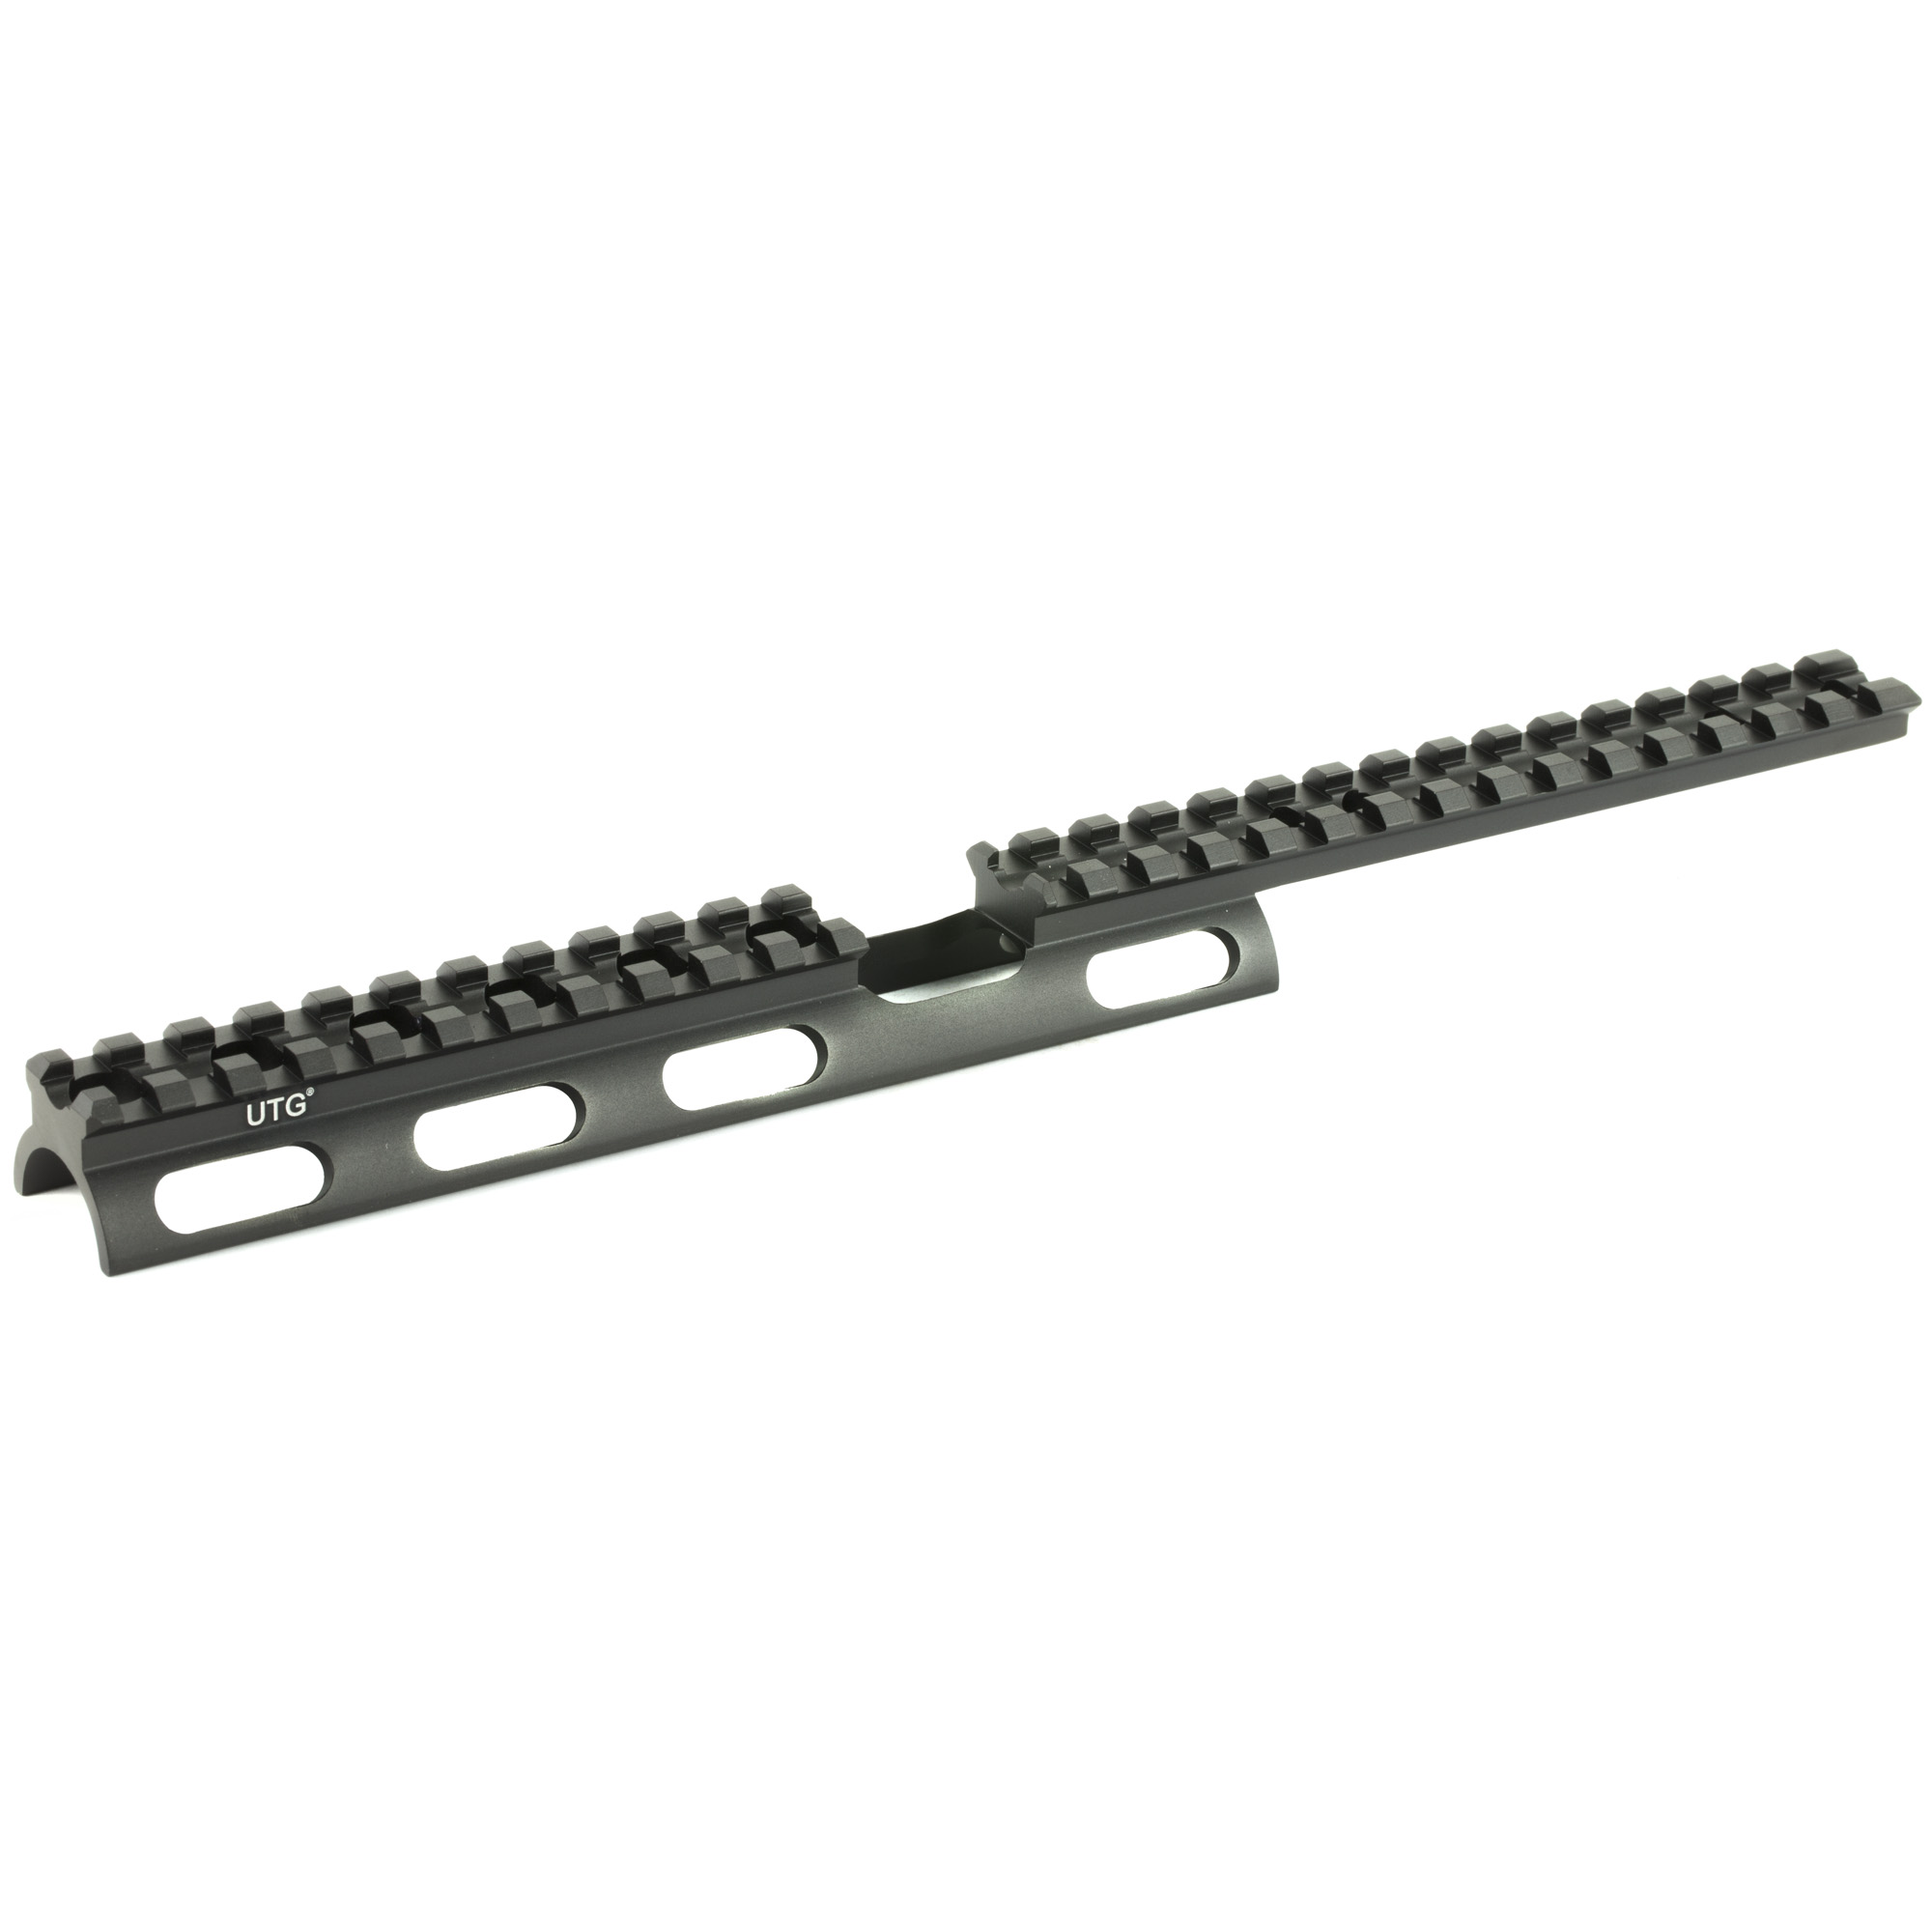 Tactical scout slim rail for the Ruger 10/22 made by UTG.